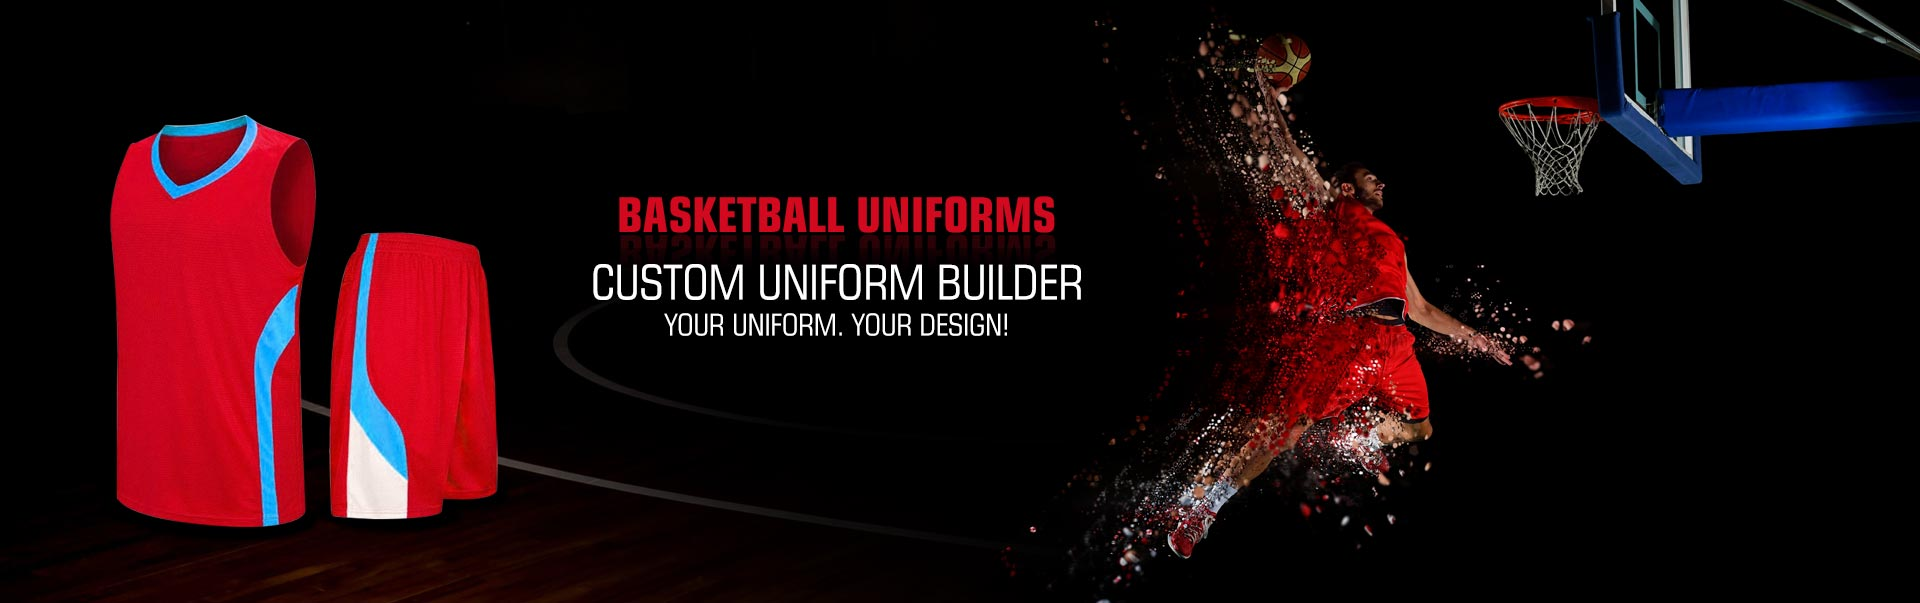 Basketball Uniforms Wholesaler, Suppliers in Corona